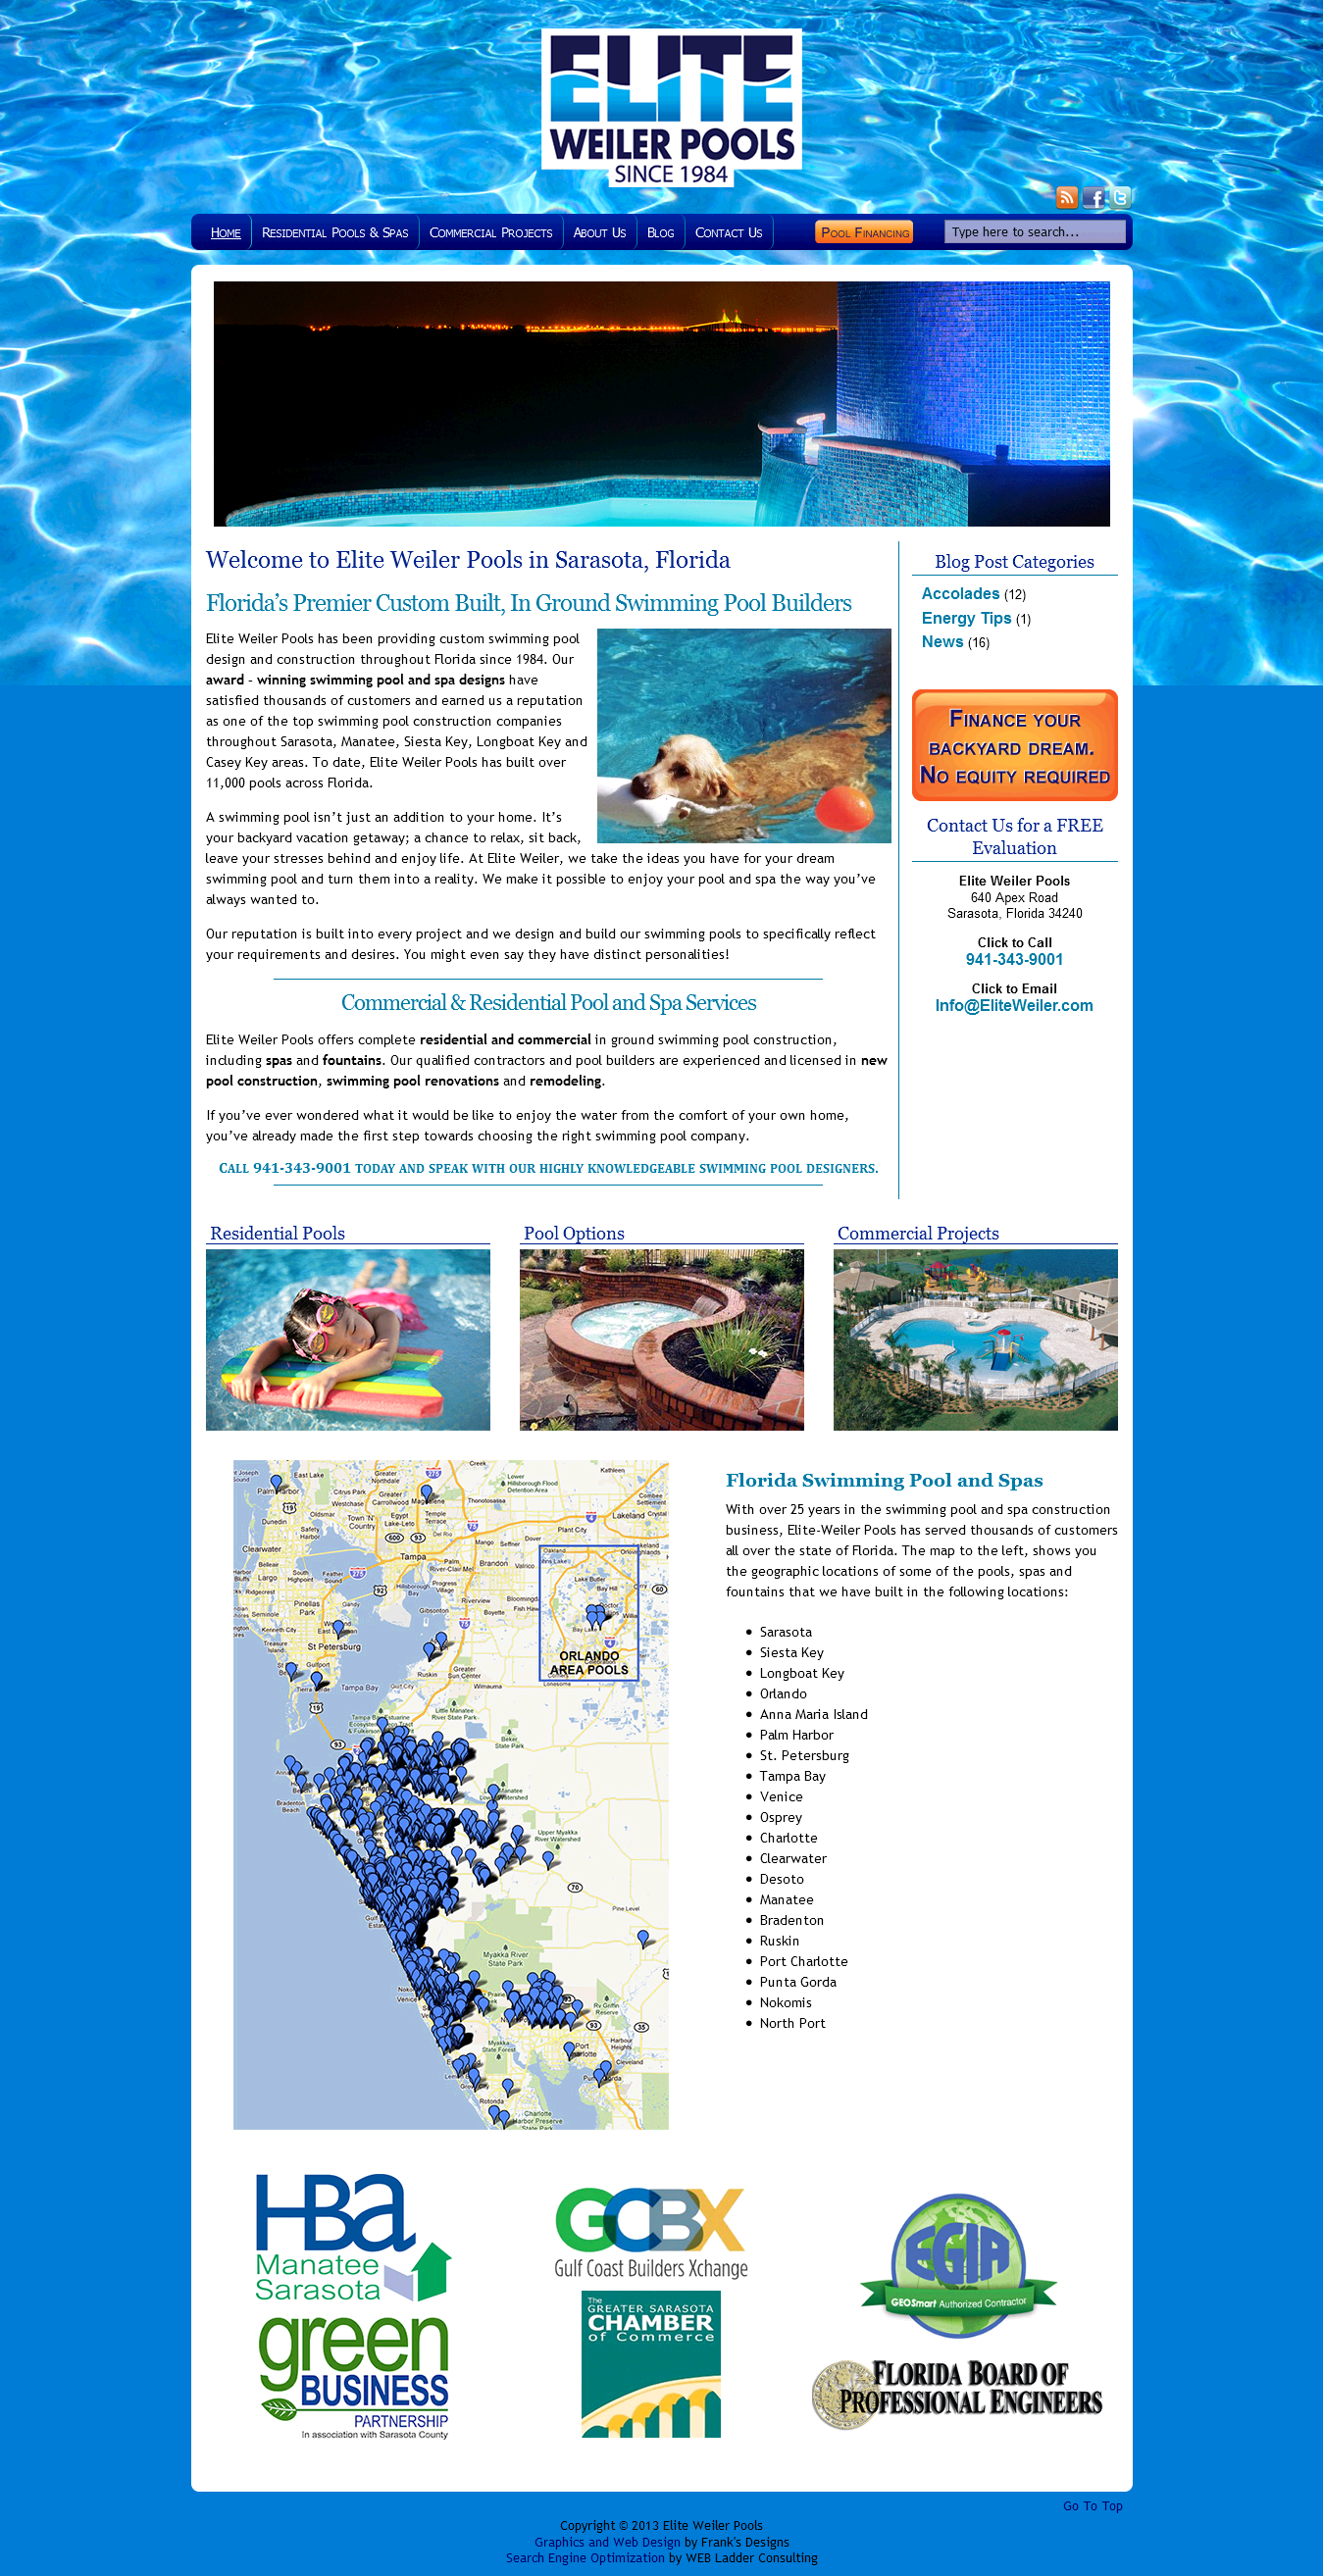 EWP-Inground-Swimming-Pool-Builders-Sarasota-I-Sarasota-Swimming-Pools-I-Spa-and-Fountain-Construction-eliteweilerpools_com